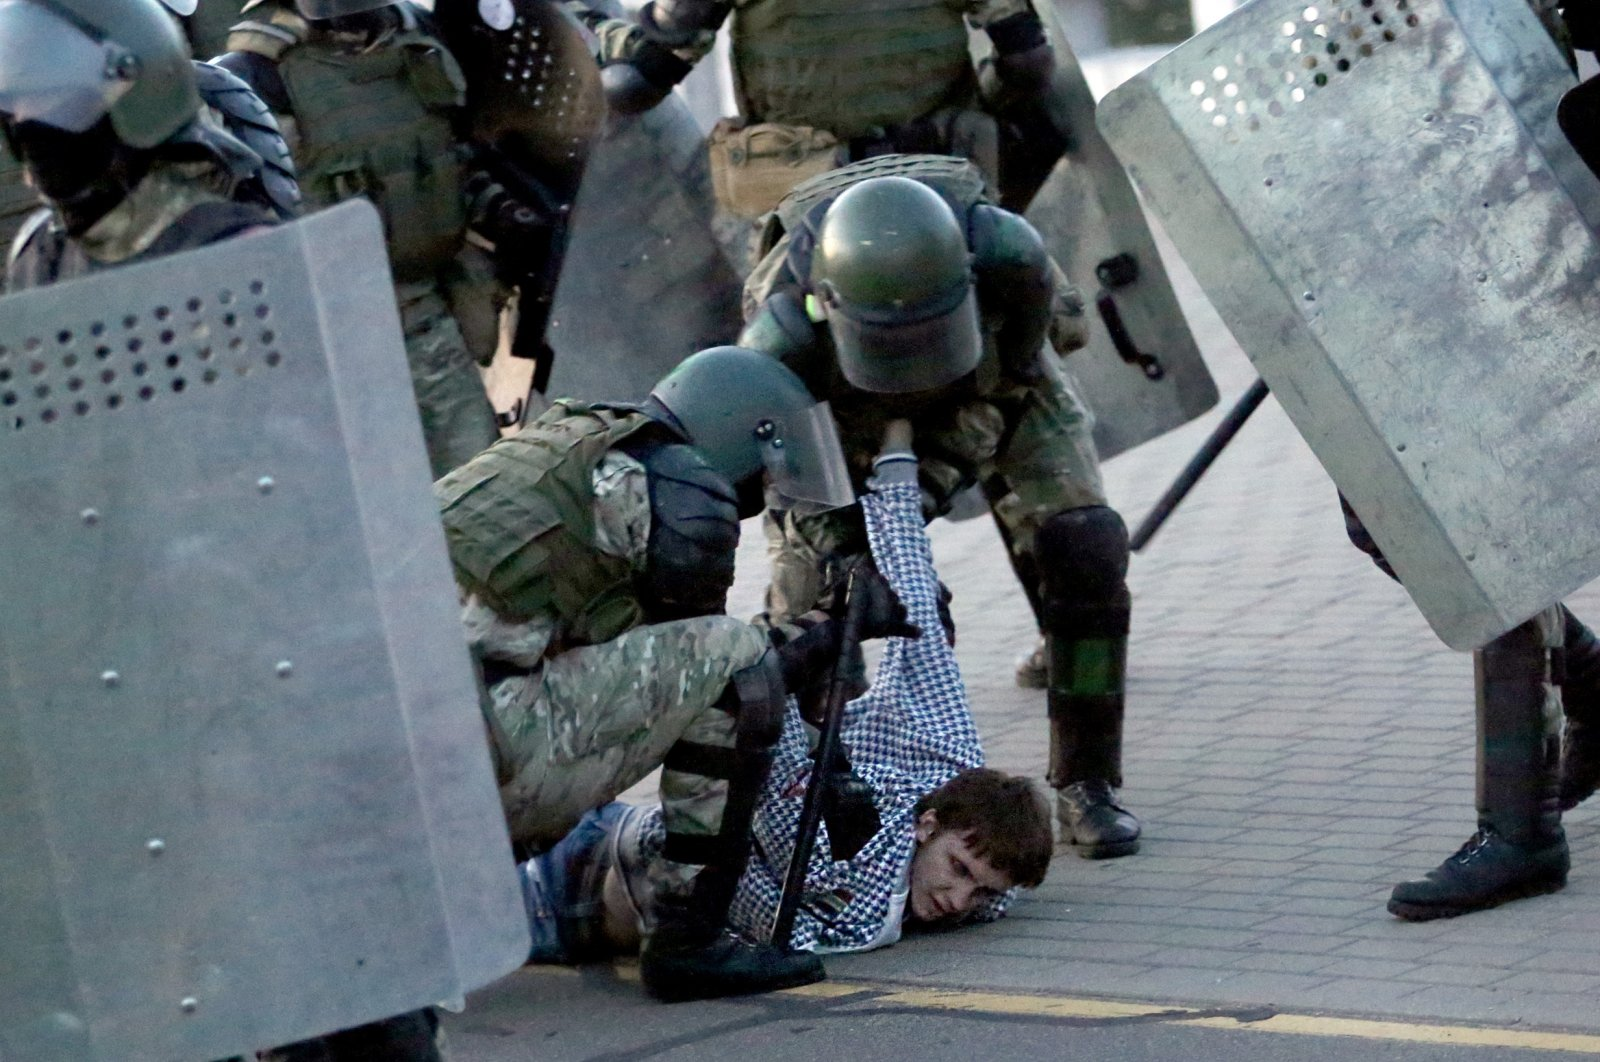 Law enforcement officers detain a man during an opposition rally to protest against the presidential inauguration, Minsk, Belarus, Sept. 23, 2020. (AFP Photo)